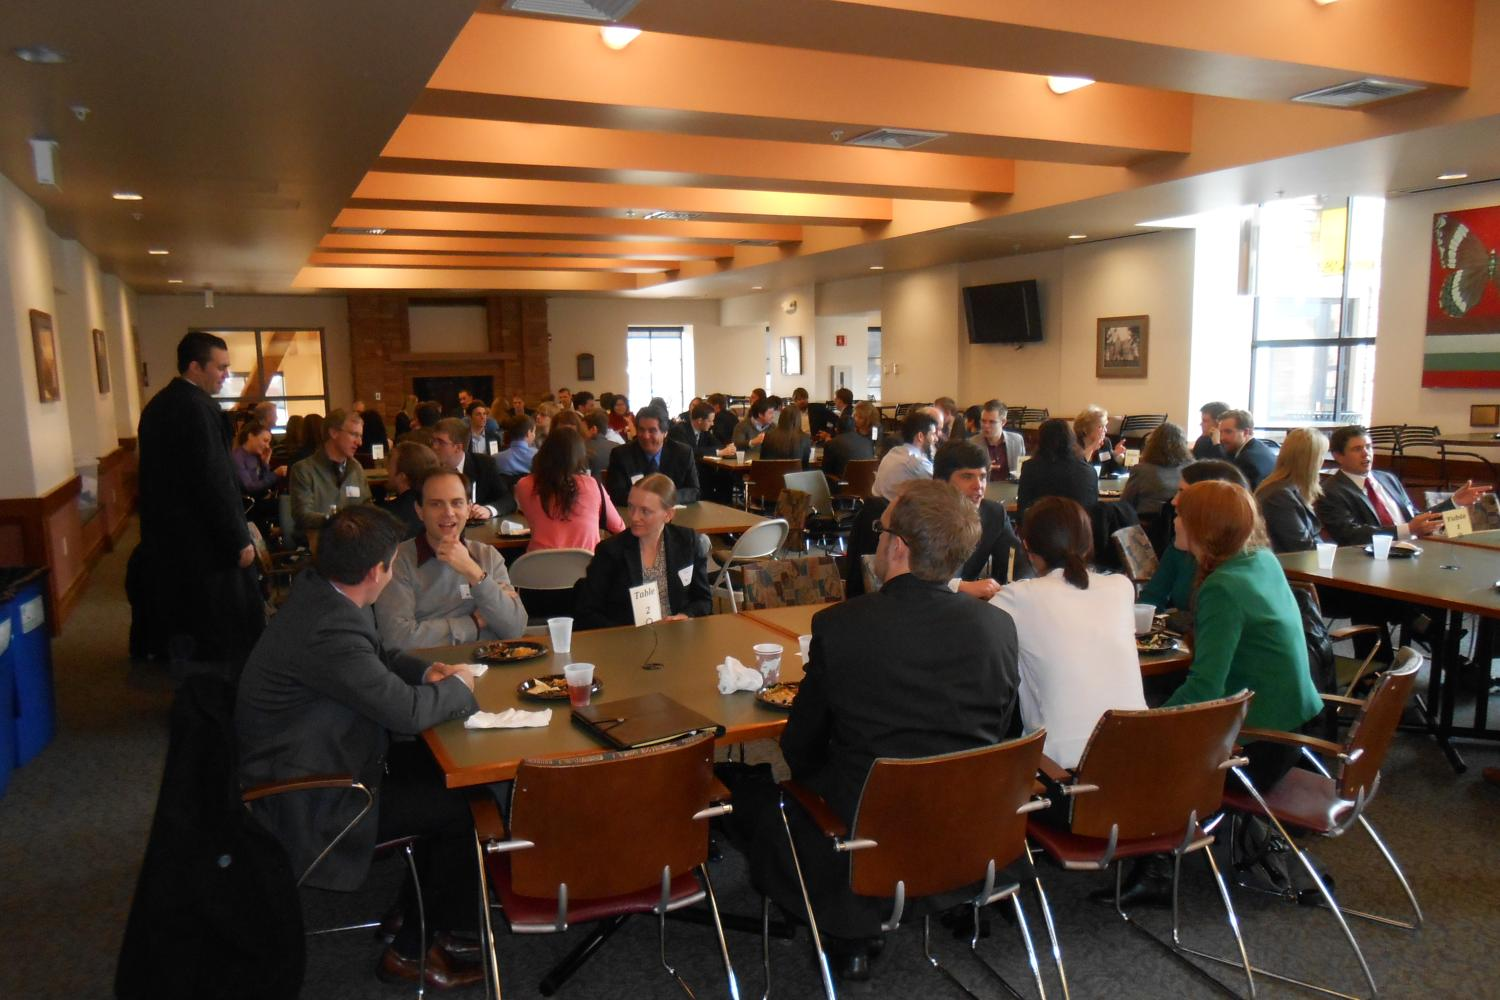 Students create professional connections with employers during the Networking Lunch.